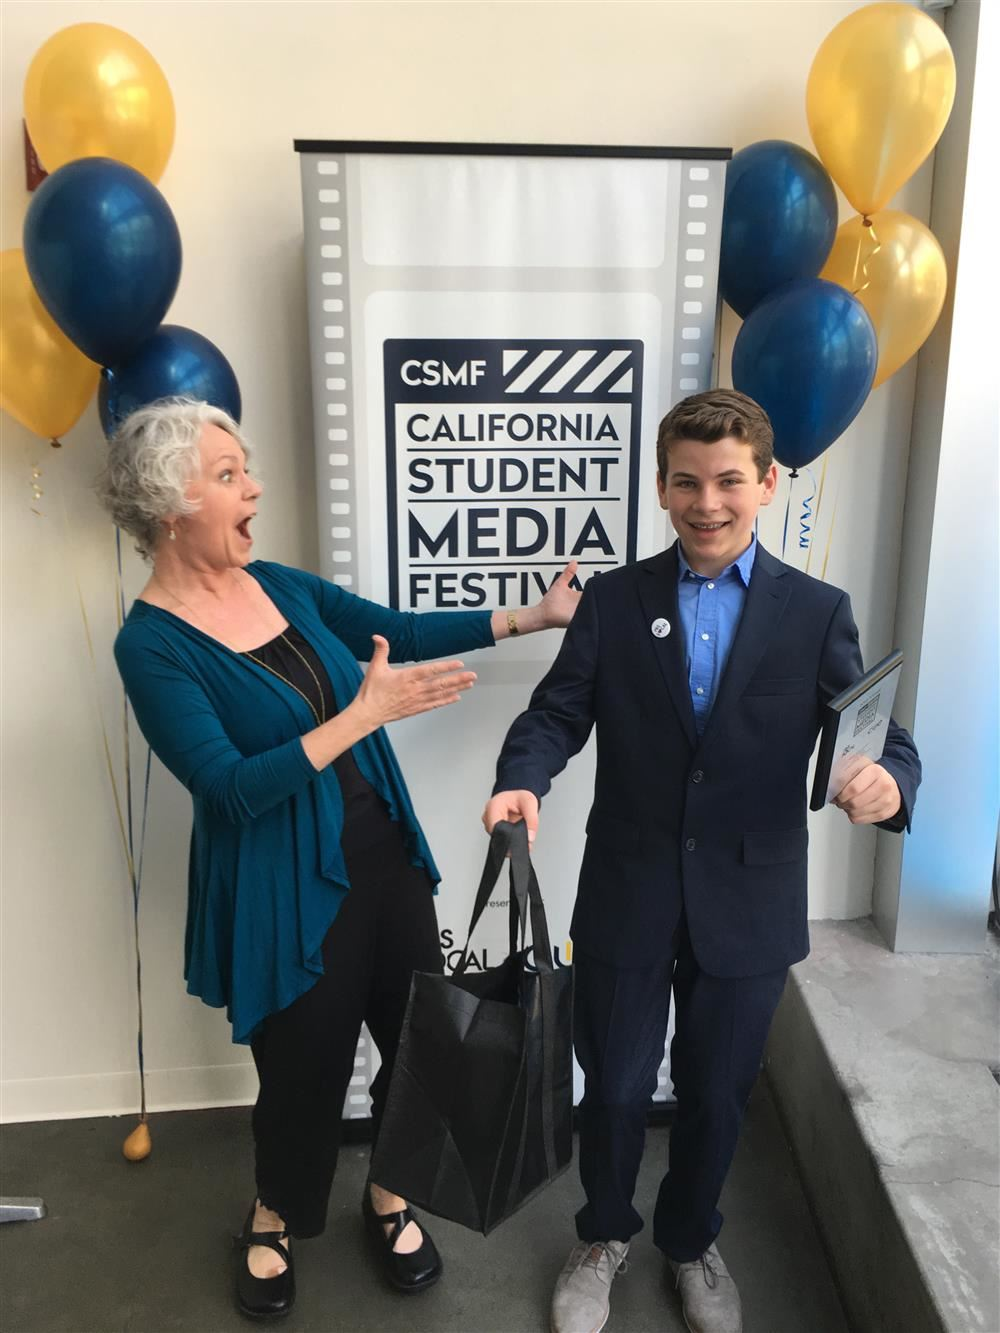 Student Kane Parsons and his teacher Laura Bradley at the California Student Media Festival